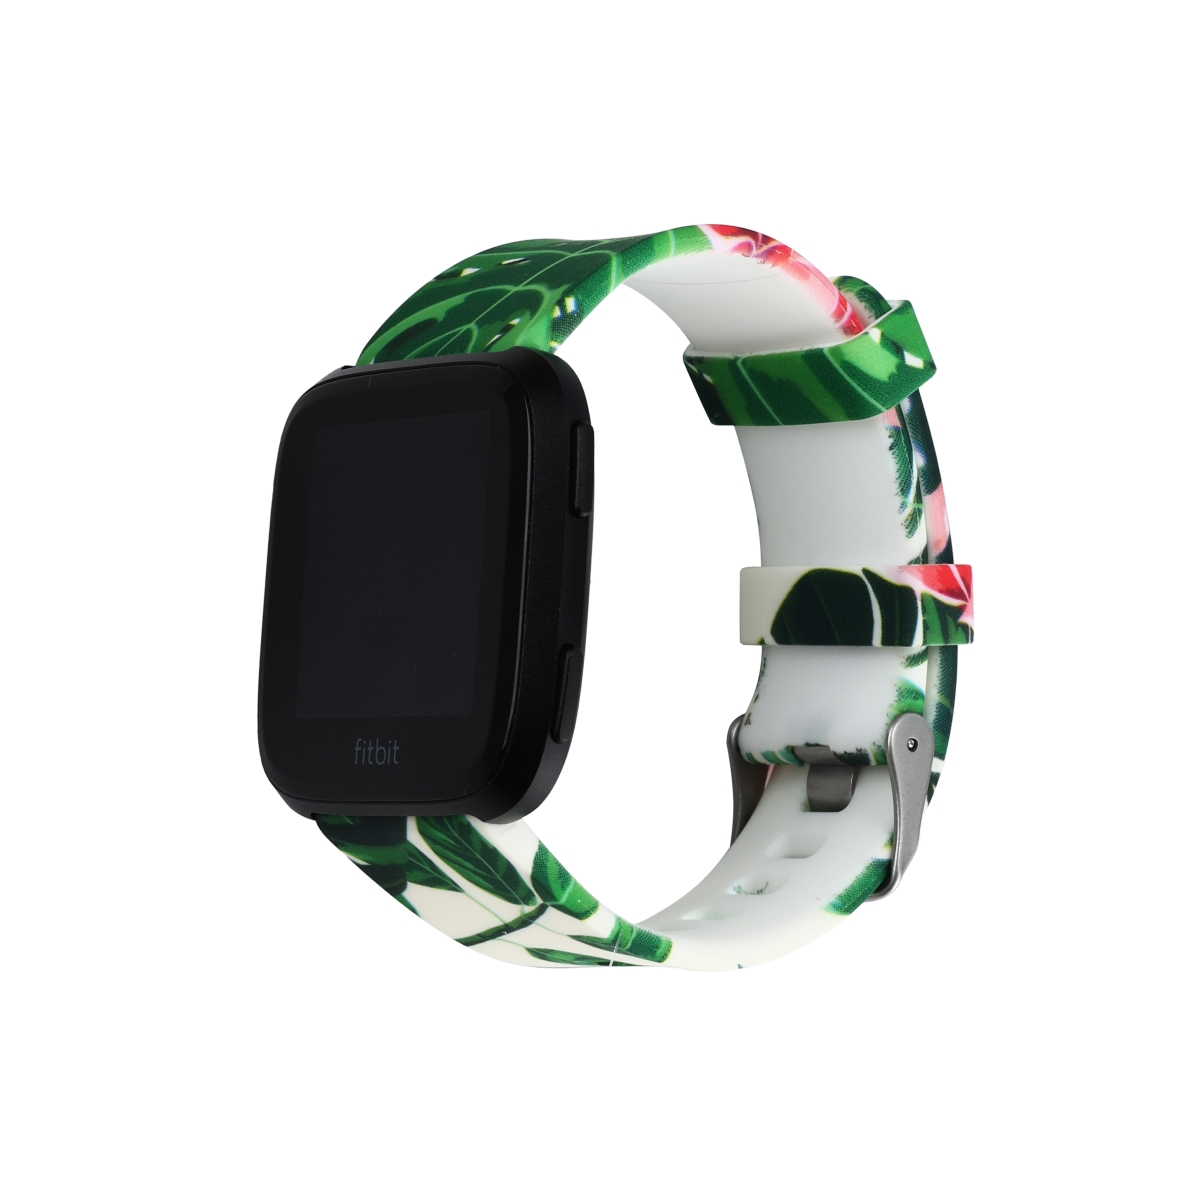 Handodo Fitbit Versa Band - Water transfer printing Pattern Sport Replacement Wristband Fitbit Band image10